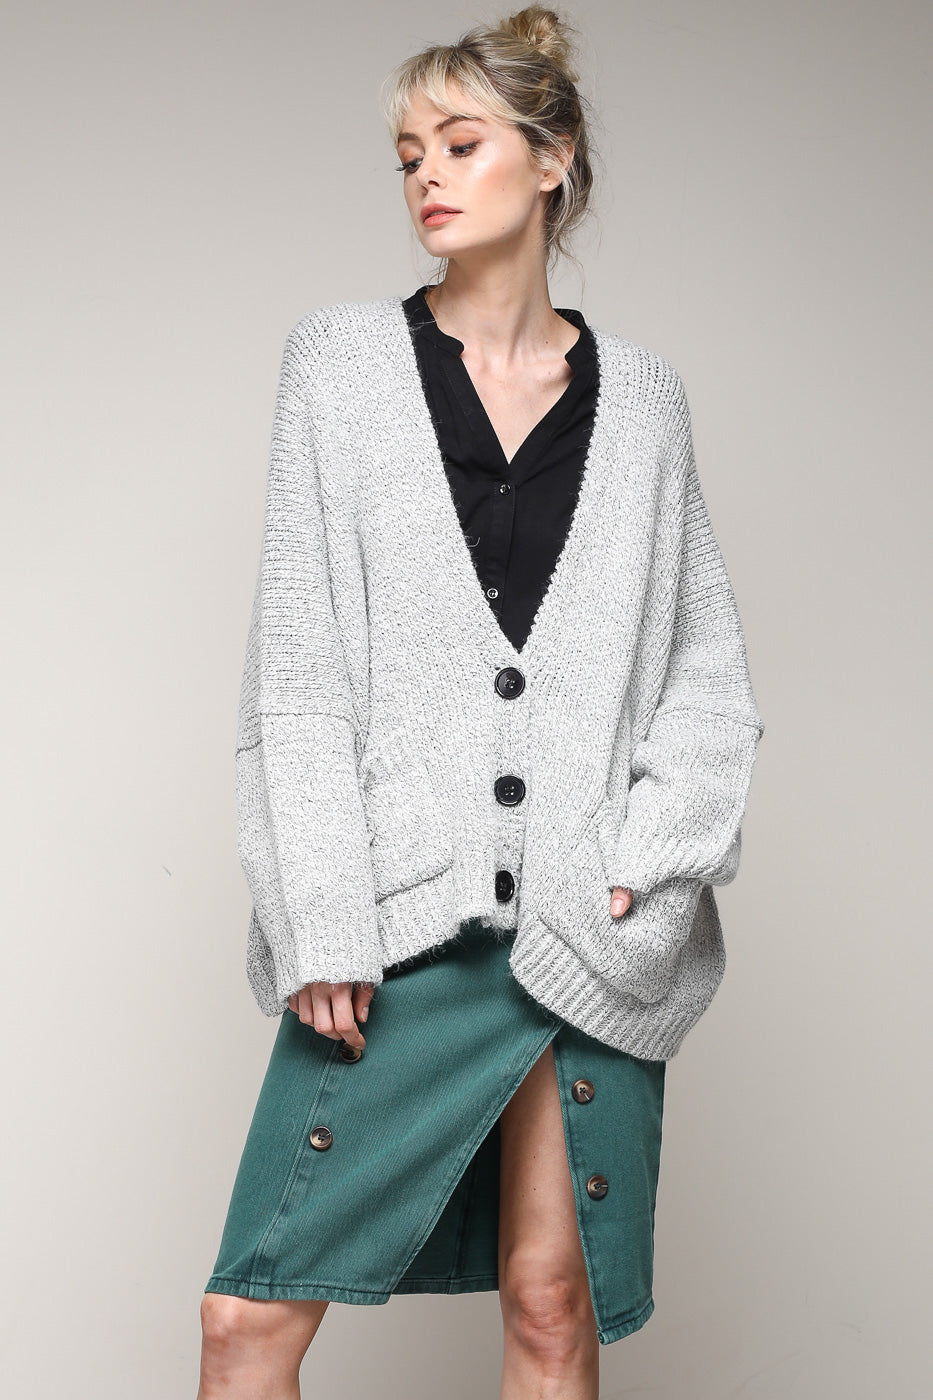 ce0750315d Women s Long Sleeve Chunky Knit Cardigan Sweaters Loose Outwear Coat With  Front pockets